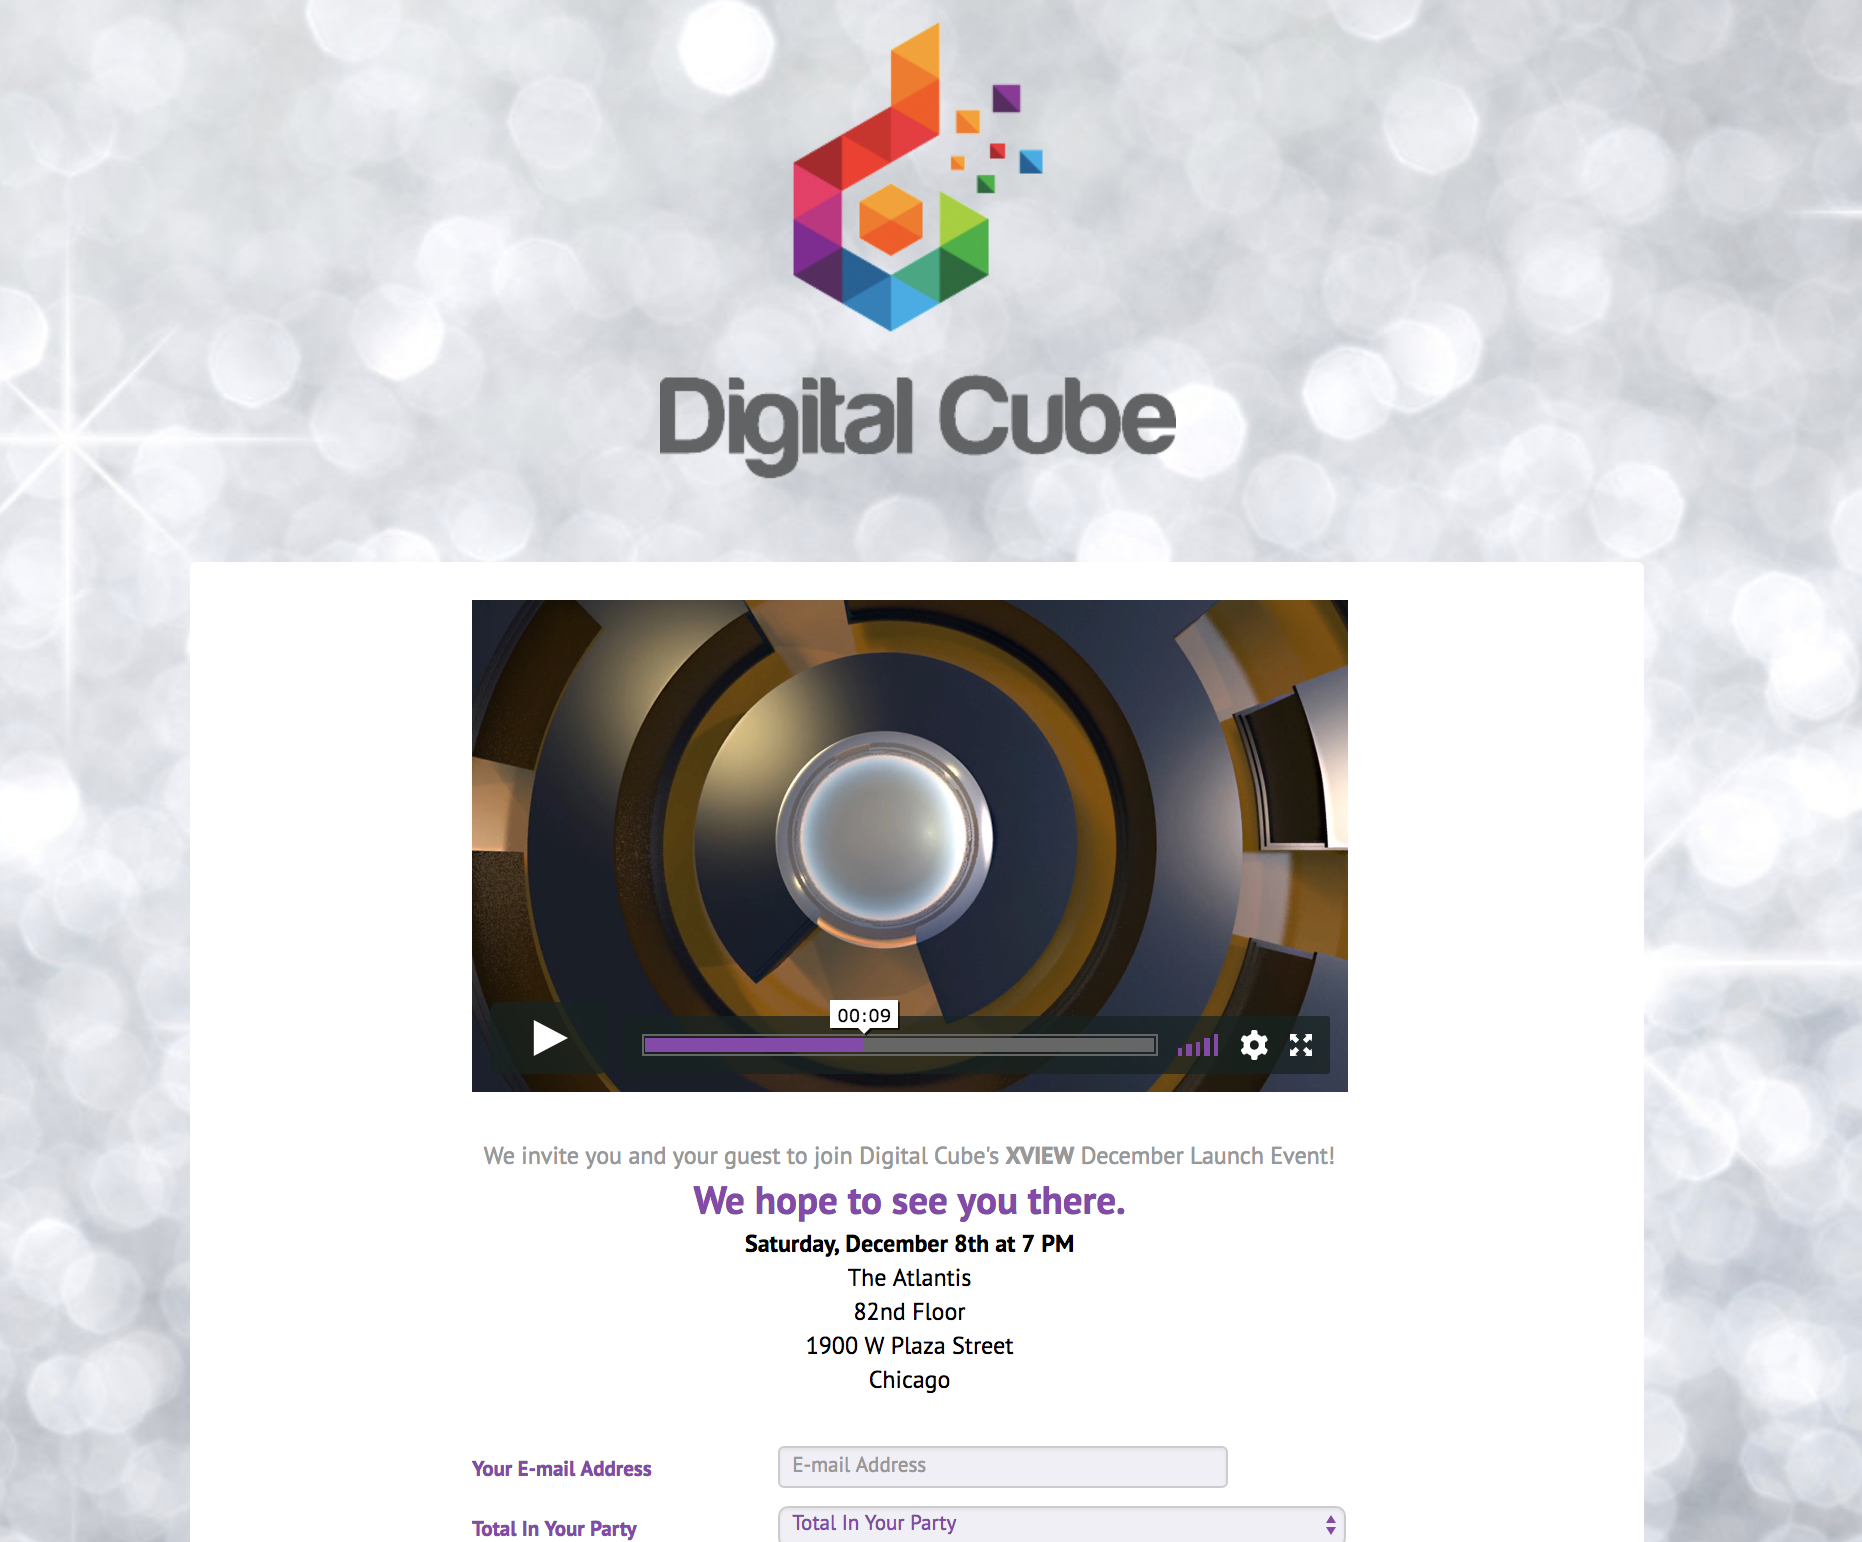 Online RSVP with seamless unbranded video integration